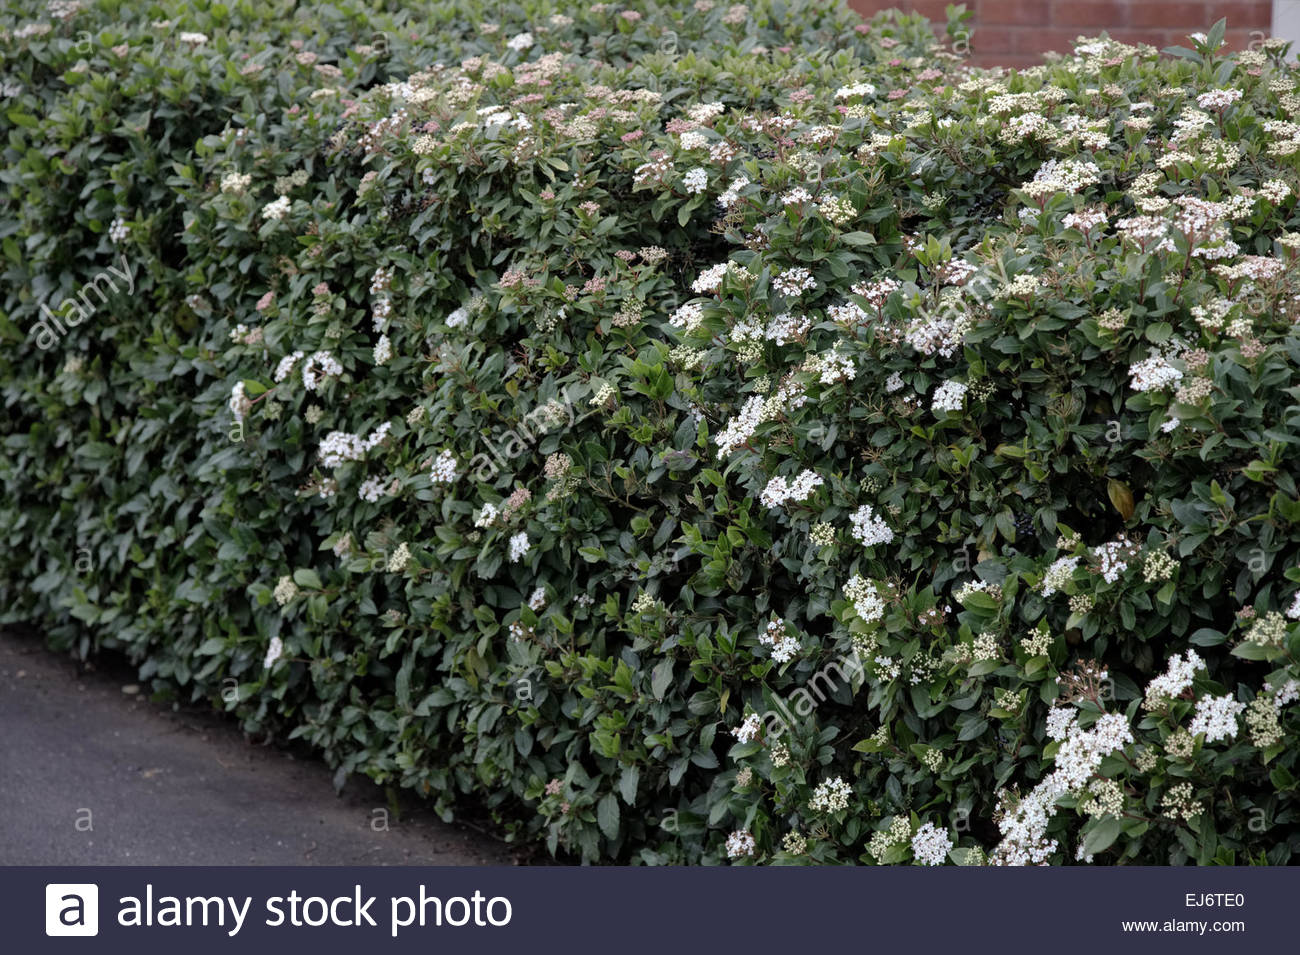 viburnum tinus as a suburban hedge stock photo royalty. Black Bedroom Furniture Sets. Home Design Ideas